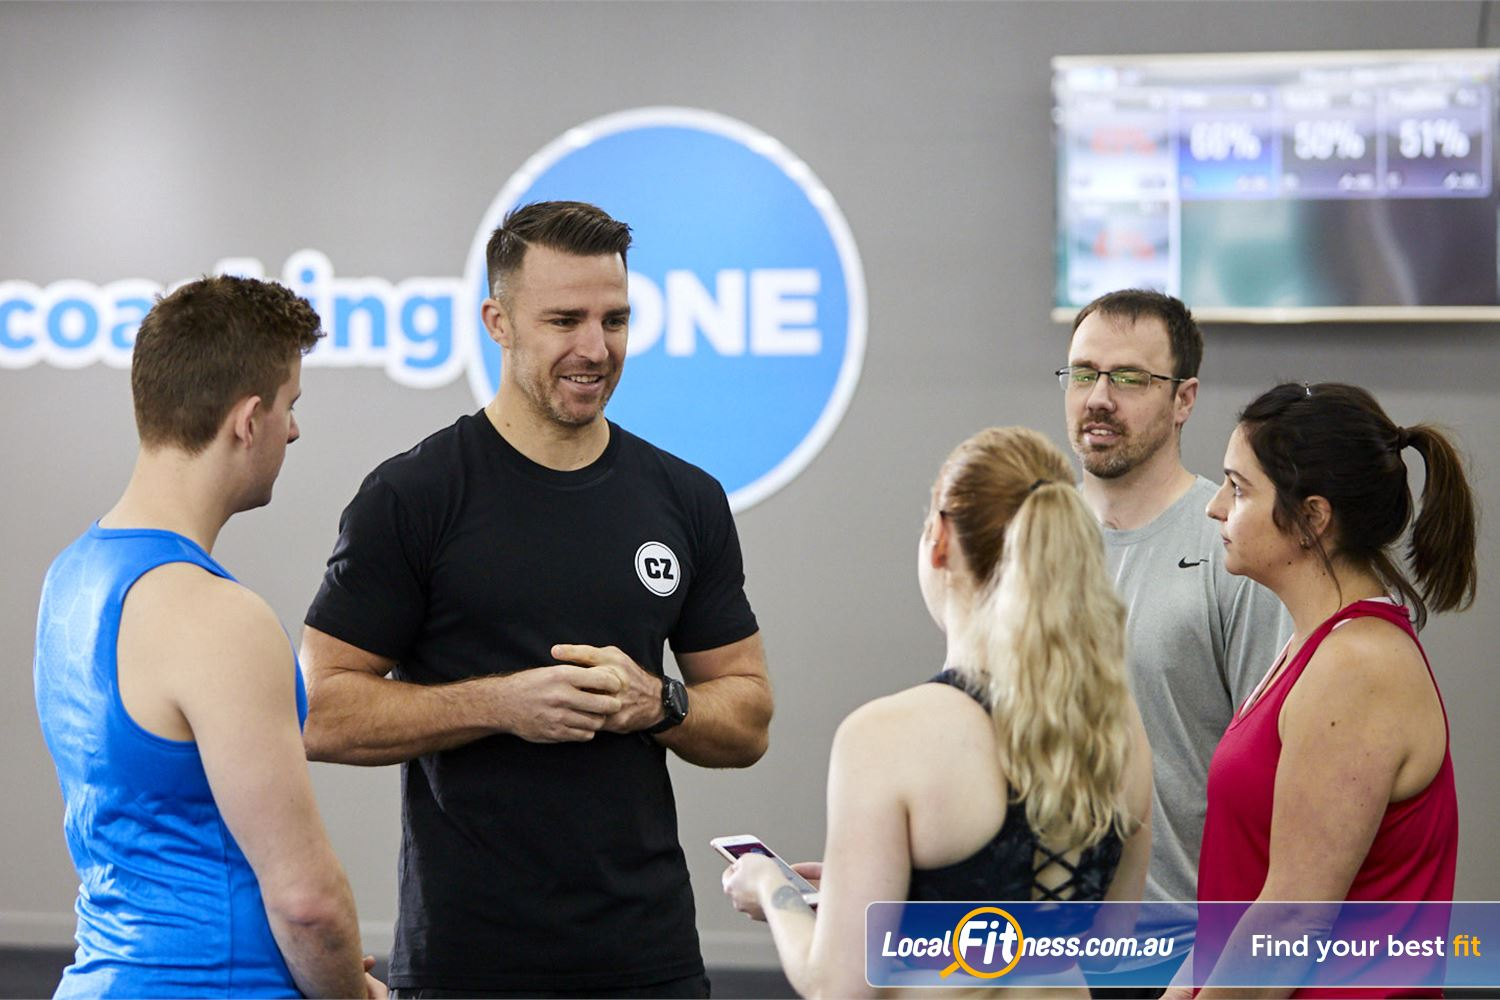 Coaching Zone Near Upper Ferntree Gully Our signature coaching review will keep your goals on track.